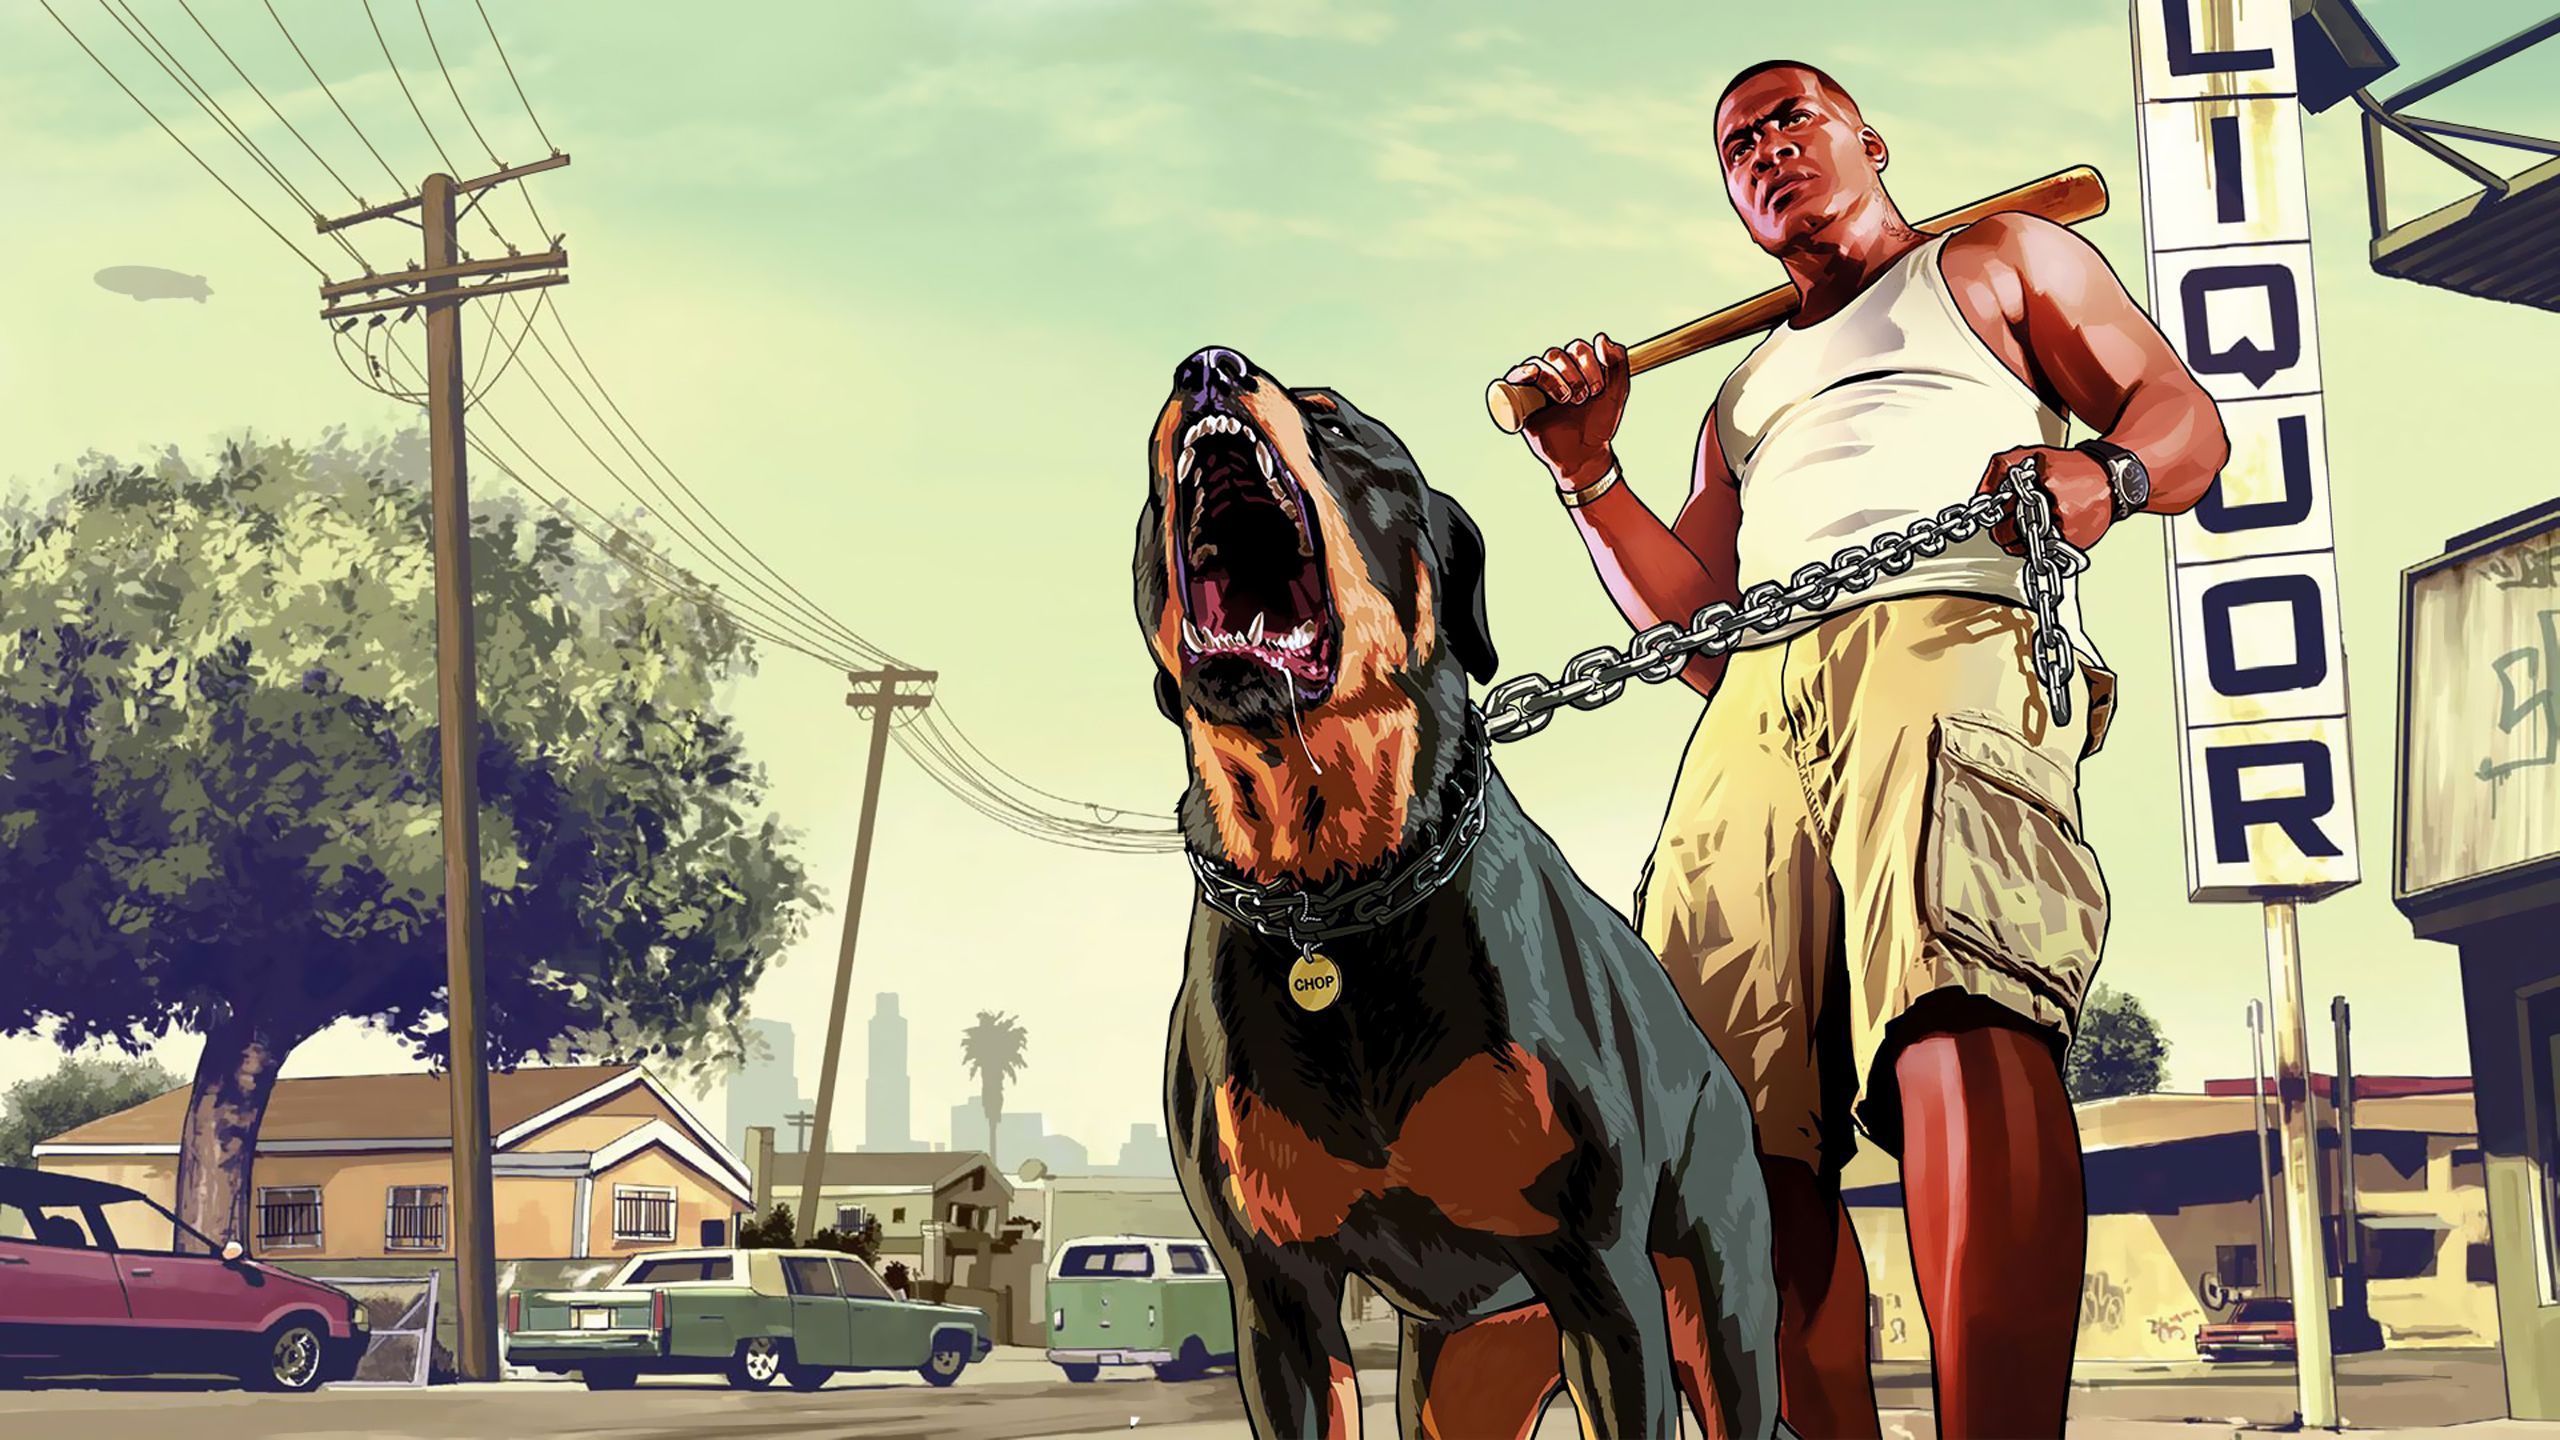 gta 5 wallpaper full hd | wallcapture | grand theft auto